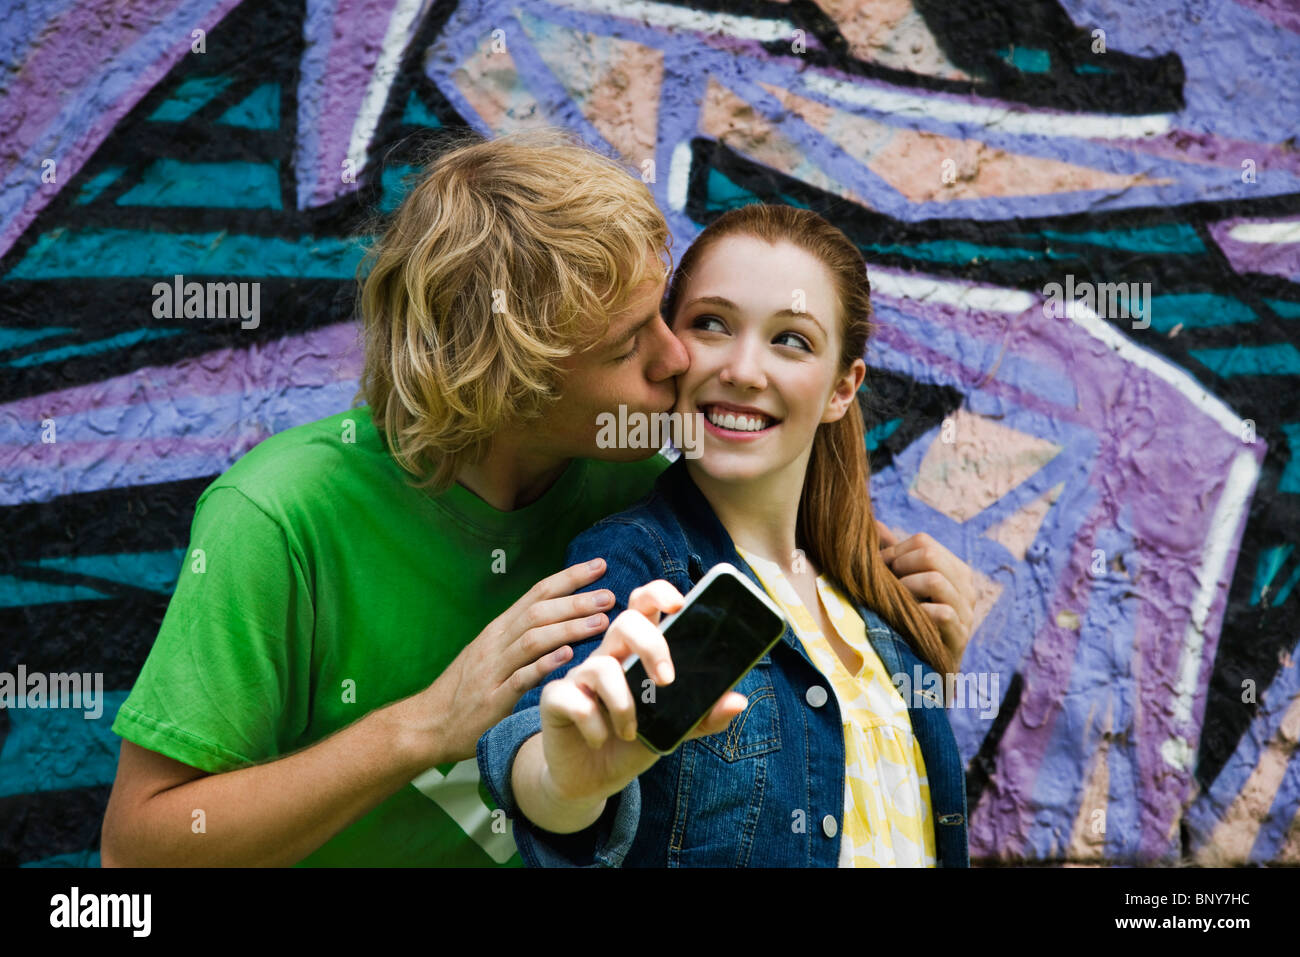 Young couple photographing themselves with cell phone, male kissing female's cheek - Stock Image